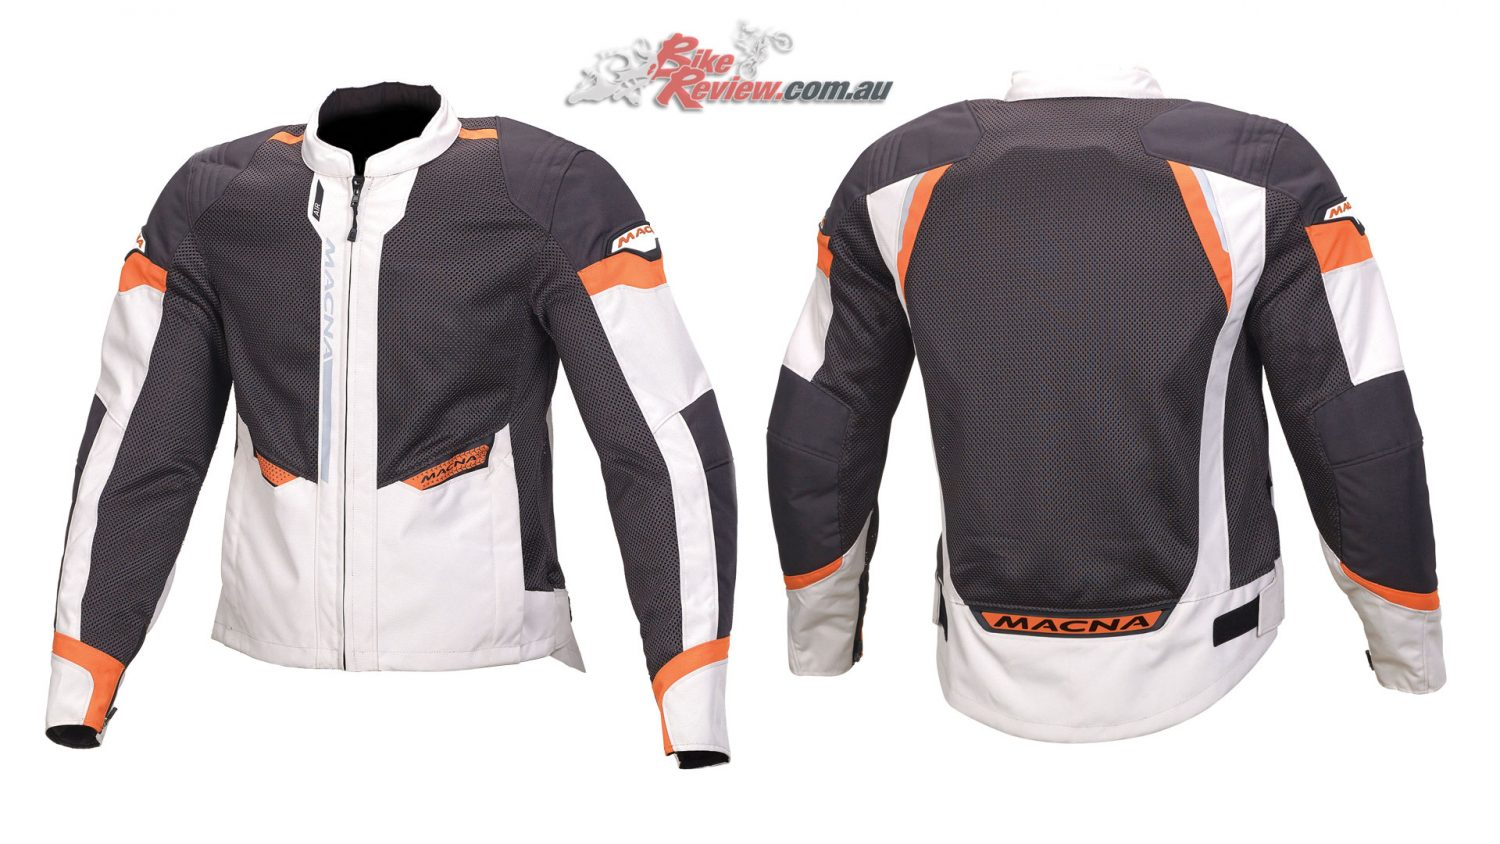 Macna Event mesh jacket